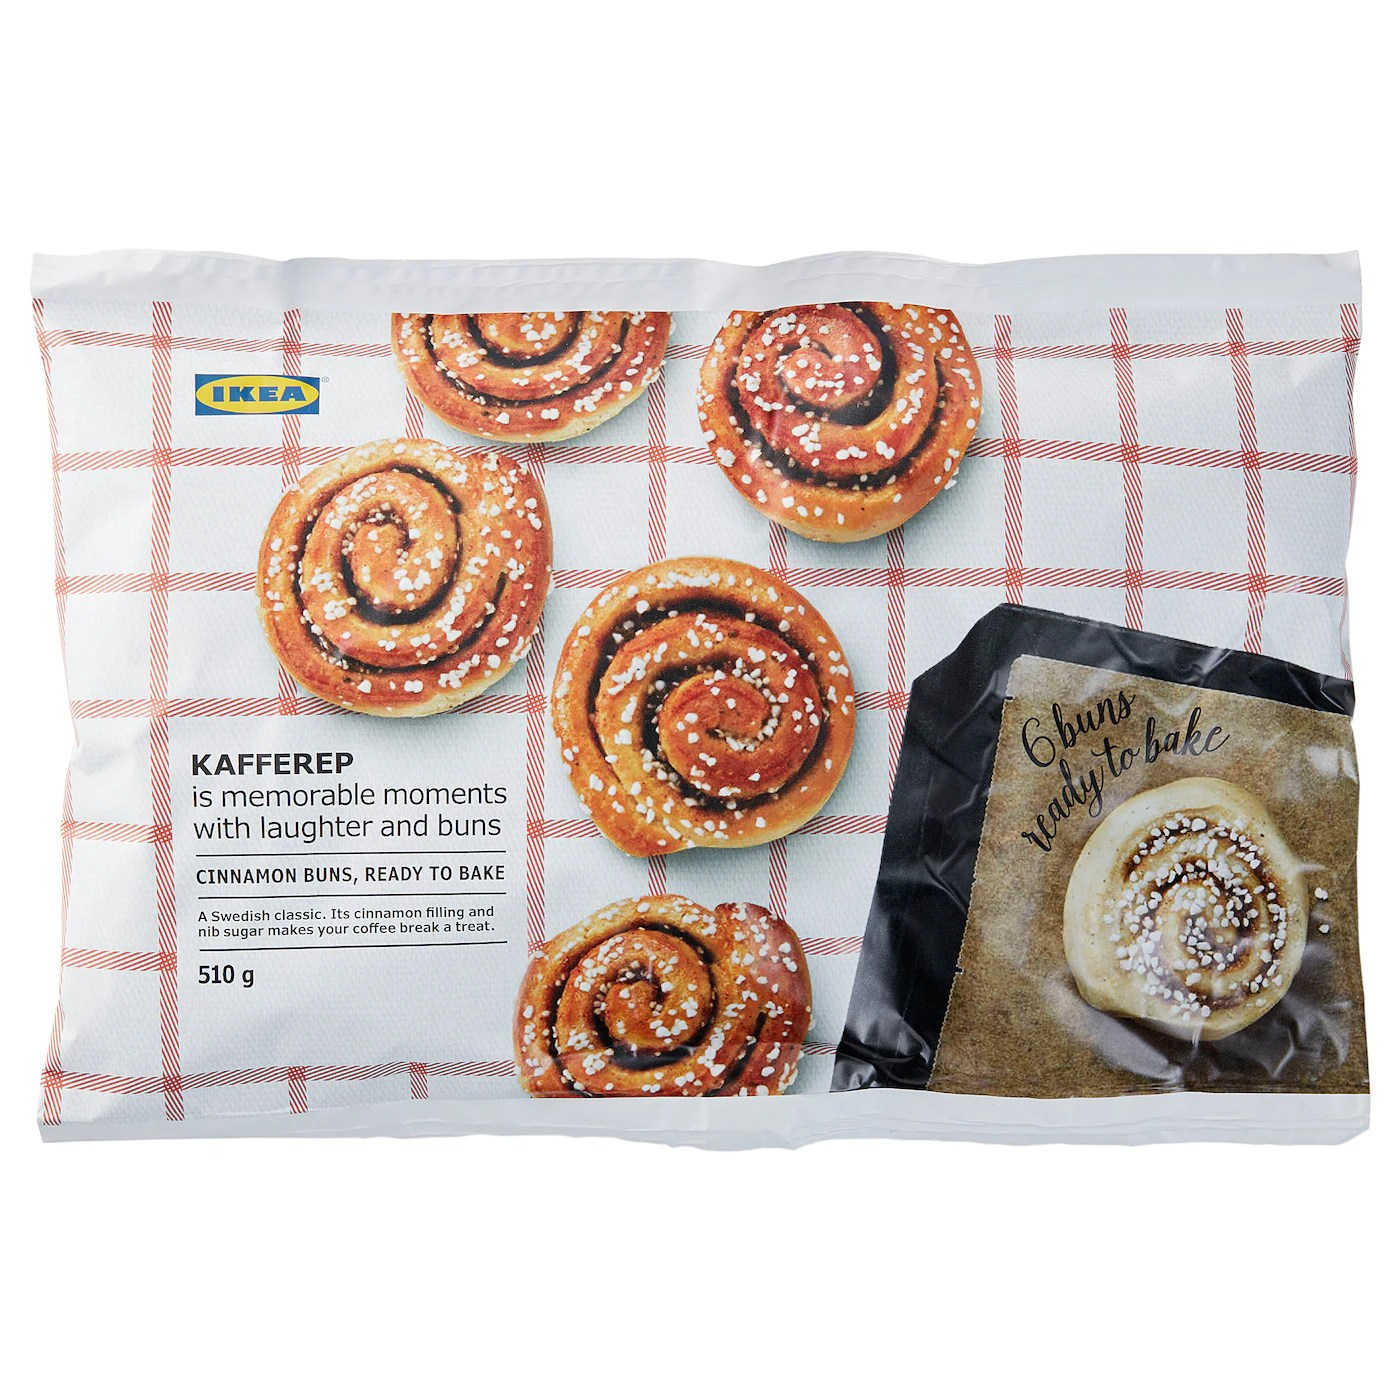 Calories in IKEA Cinnamon Buns, frozen, ready to bake